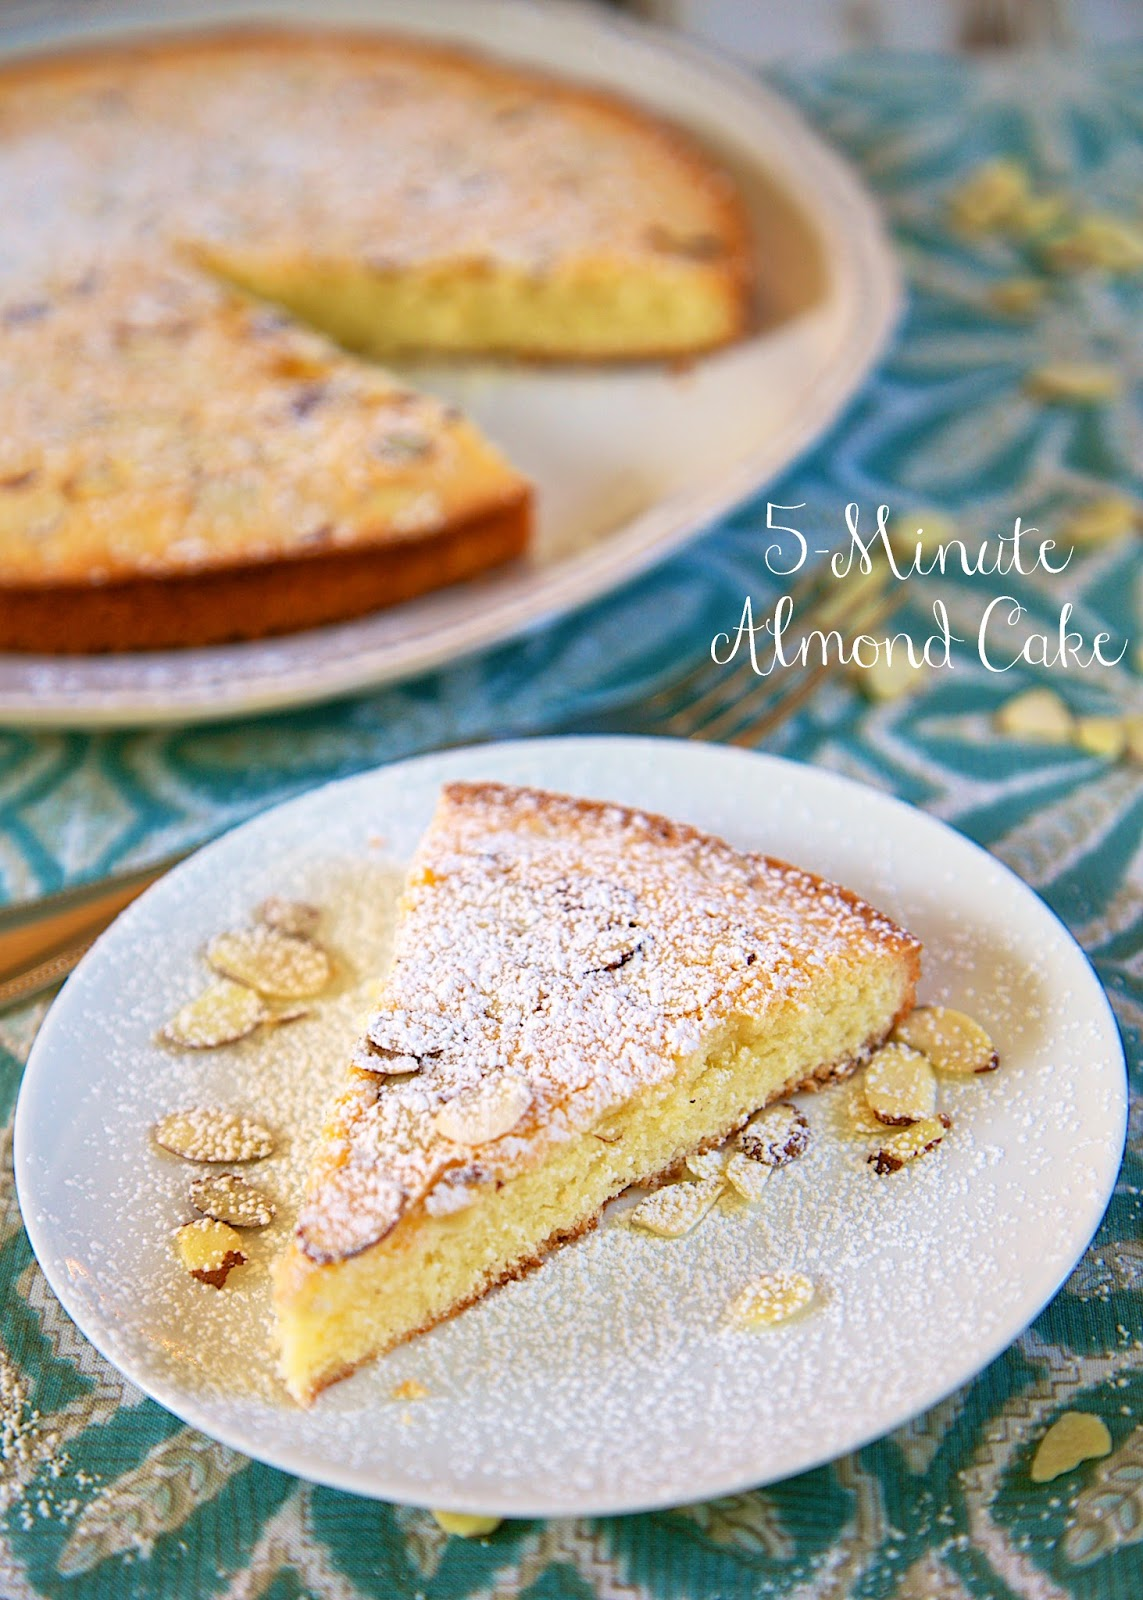 5 Minute Makeup Must Haves: 5-Minute Almond Cake